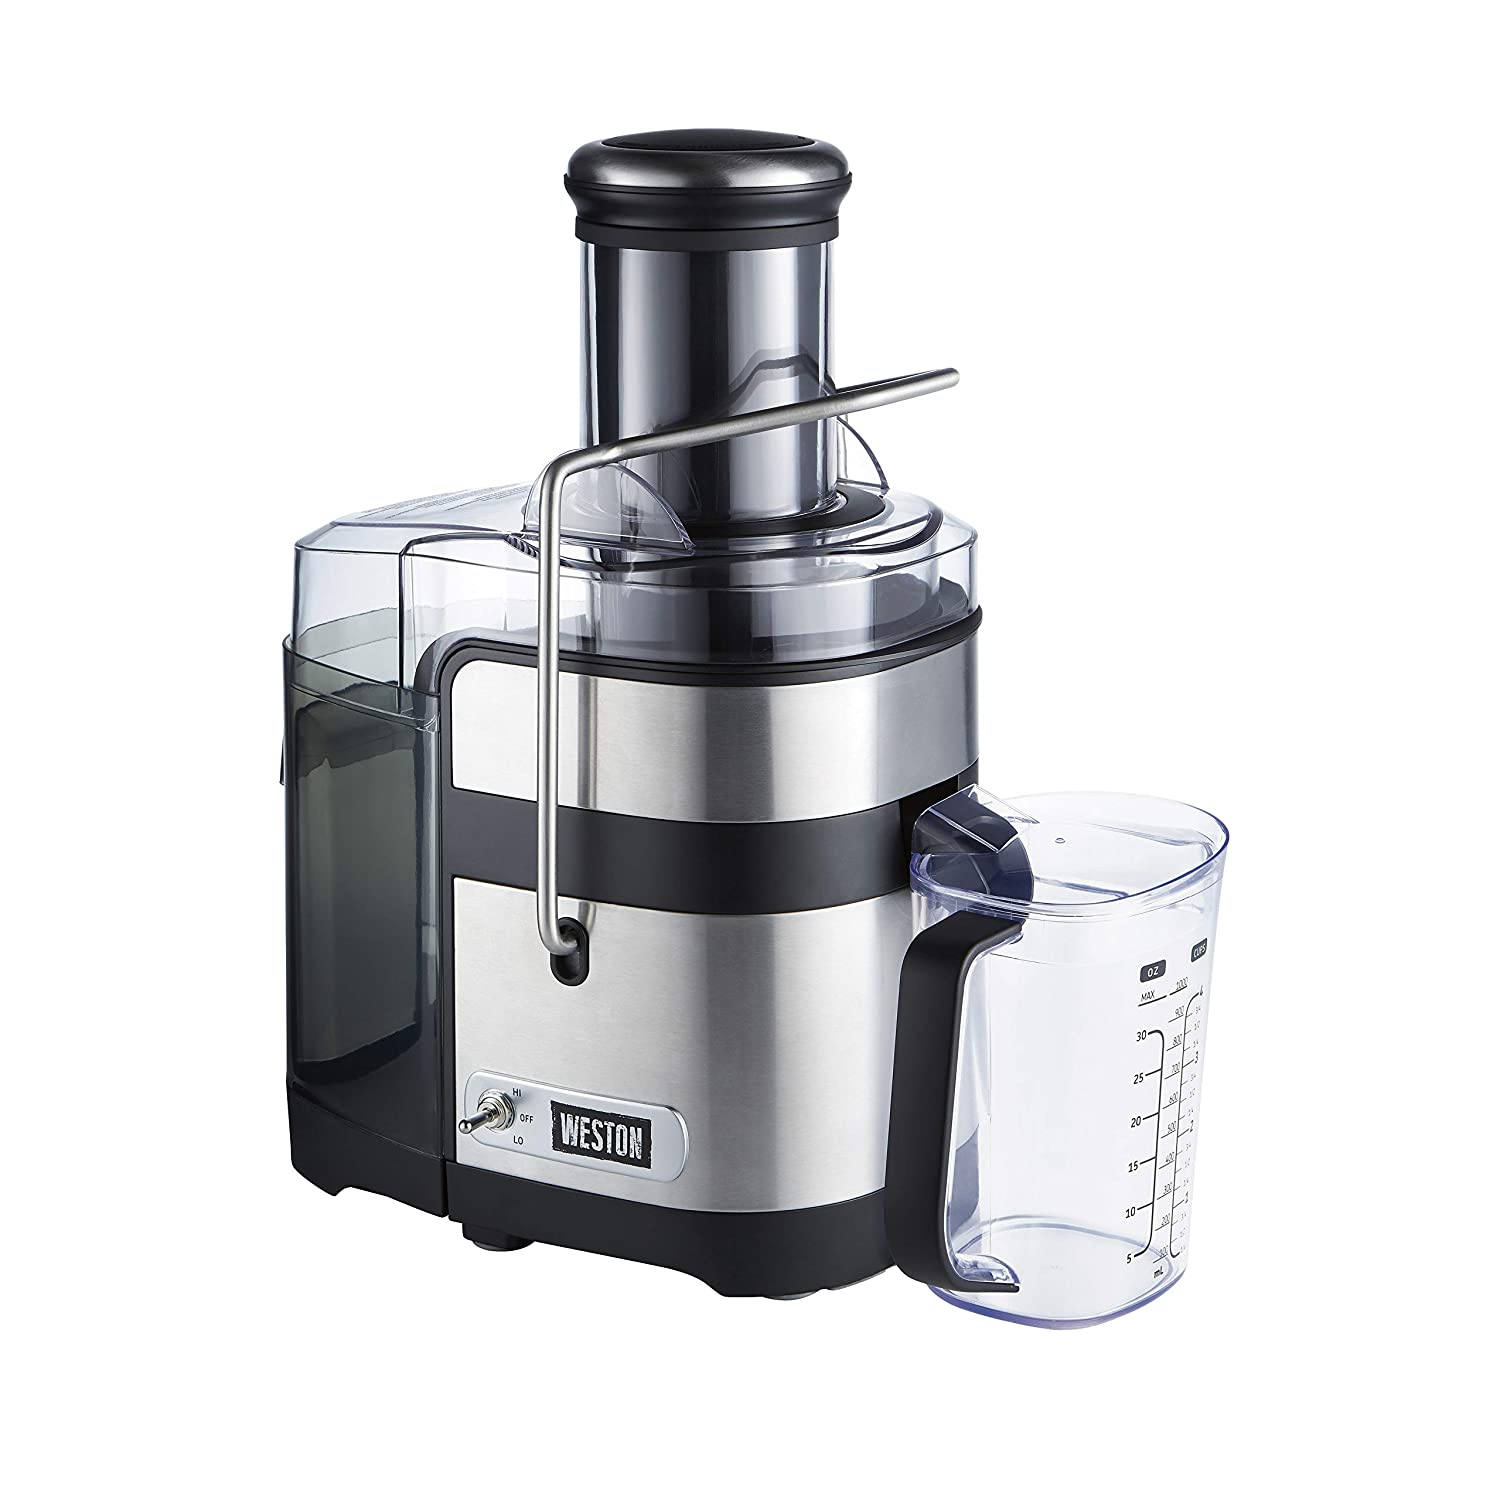 Weston Powerful Juicer Machine with XL 3.5 Feed Chute, BPA Free, 1100W, Easy Sweep Cleaning Tool 67902 , Silver